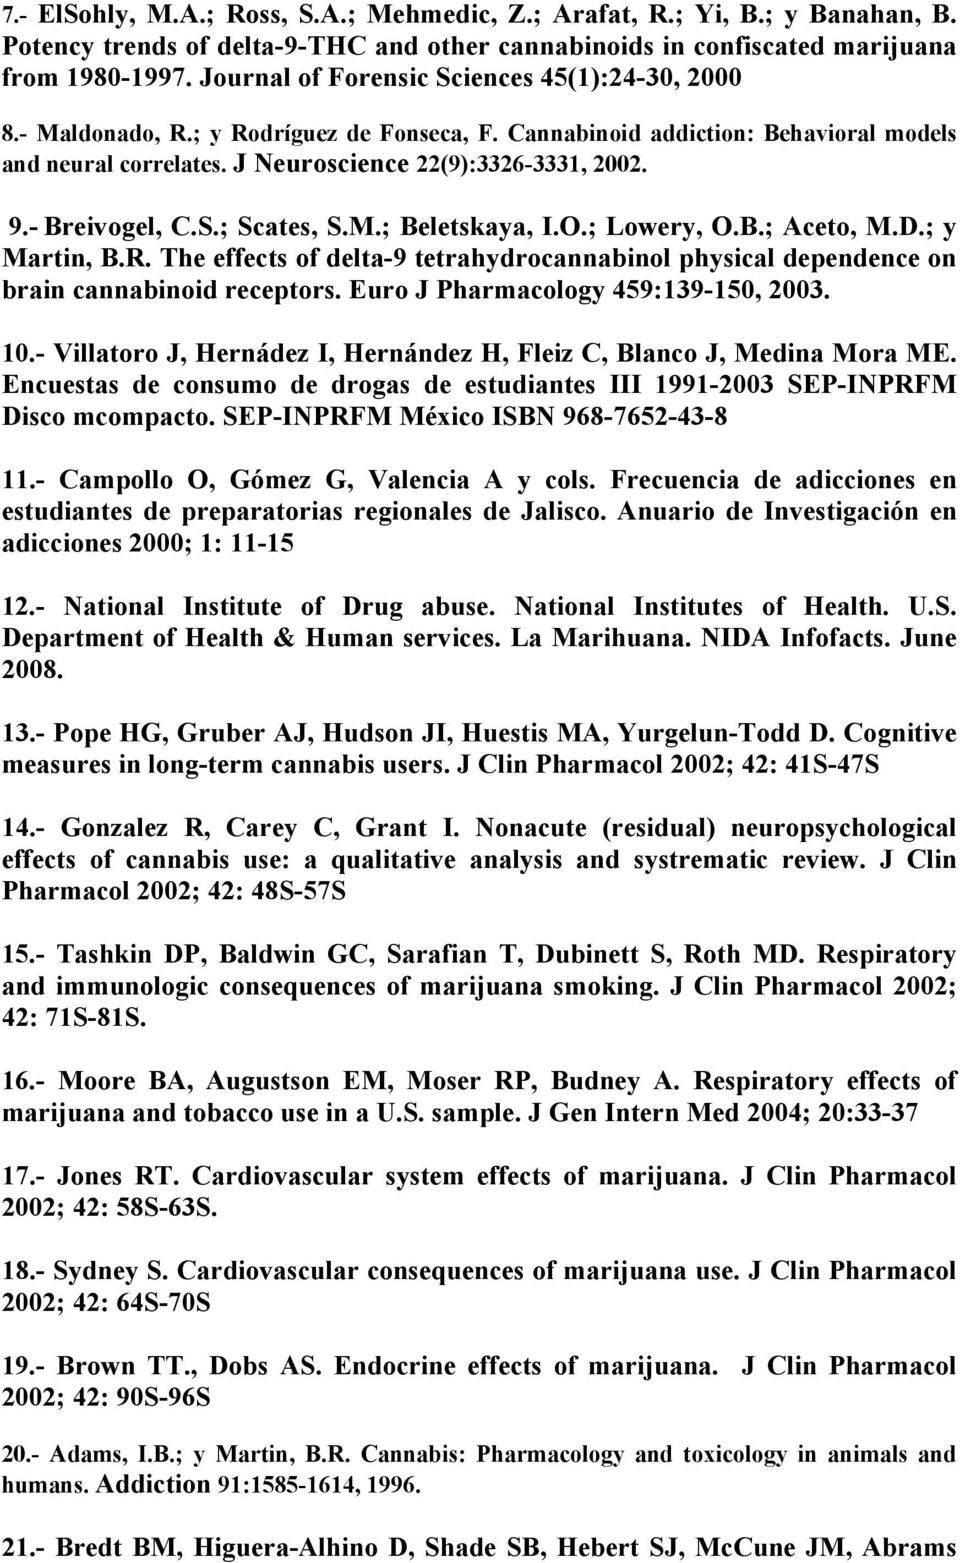 - Breivogel, C.S.; Scates, S.M.; Beletskaya, I.O.; Lowery, O.B.; Aceto, M.D.; y Martin, B.R. The effects of delta-9 tetrahydrocannabinol physical dependence on brain cannabinoid receptors.